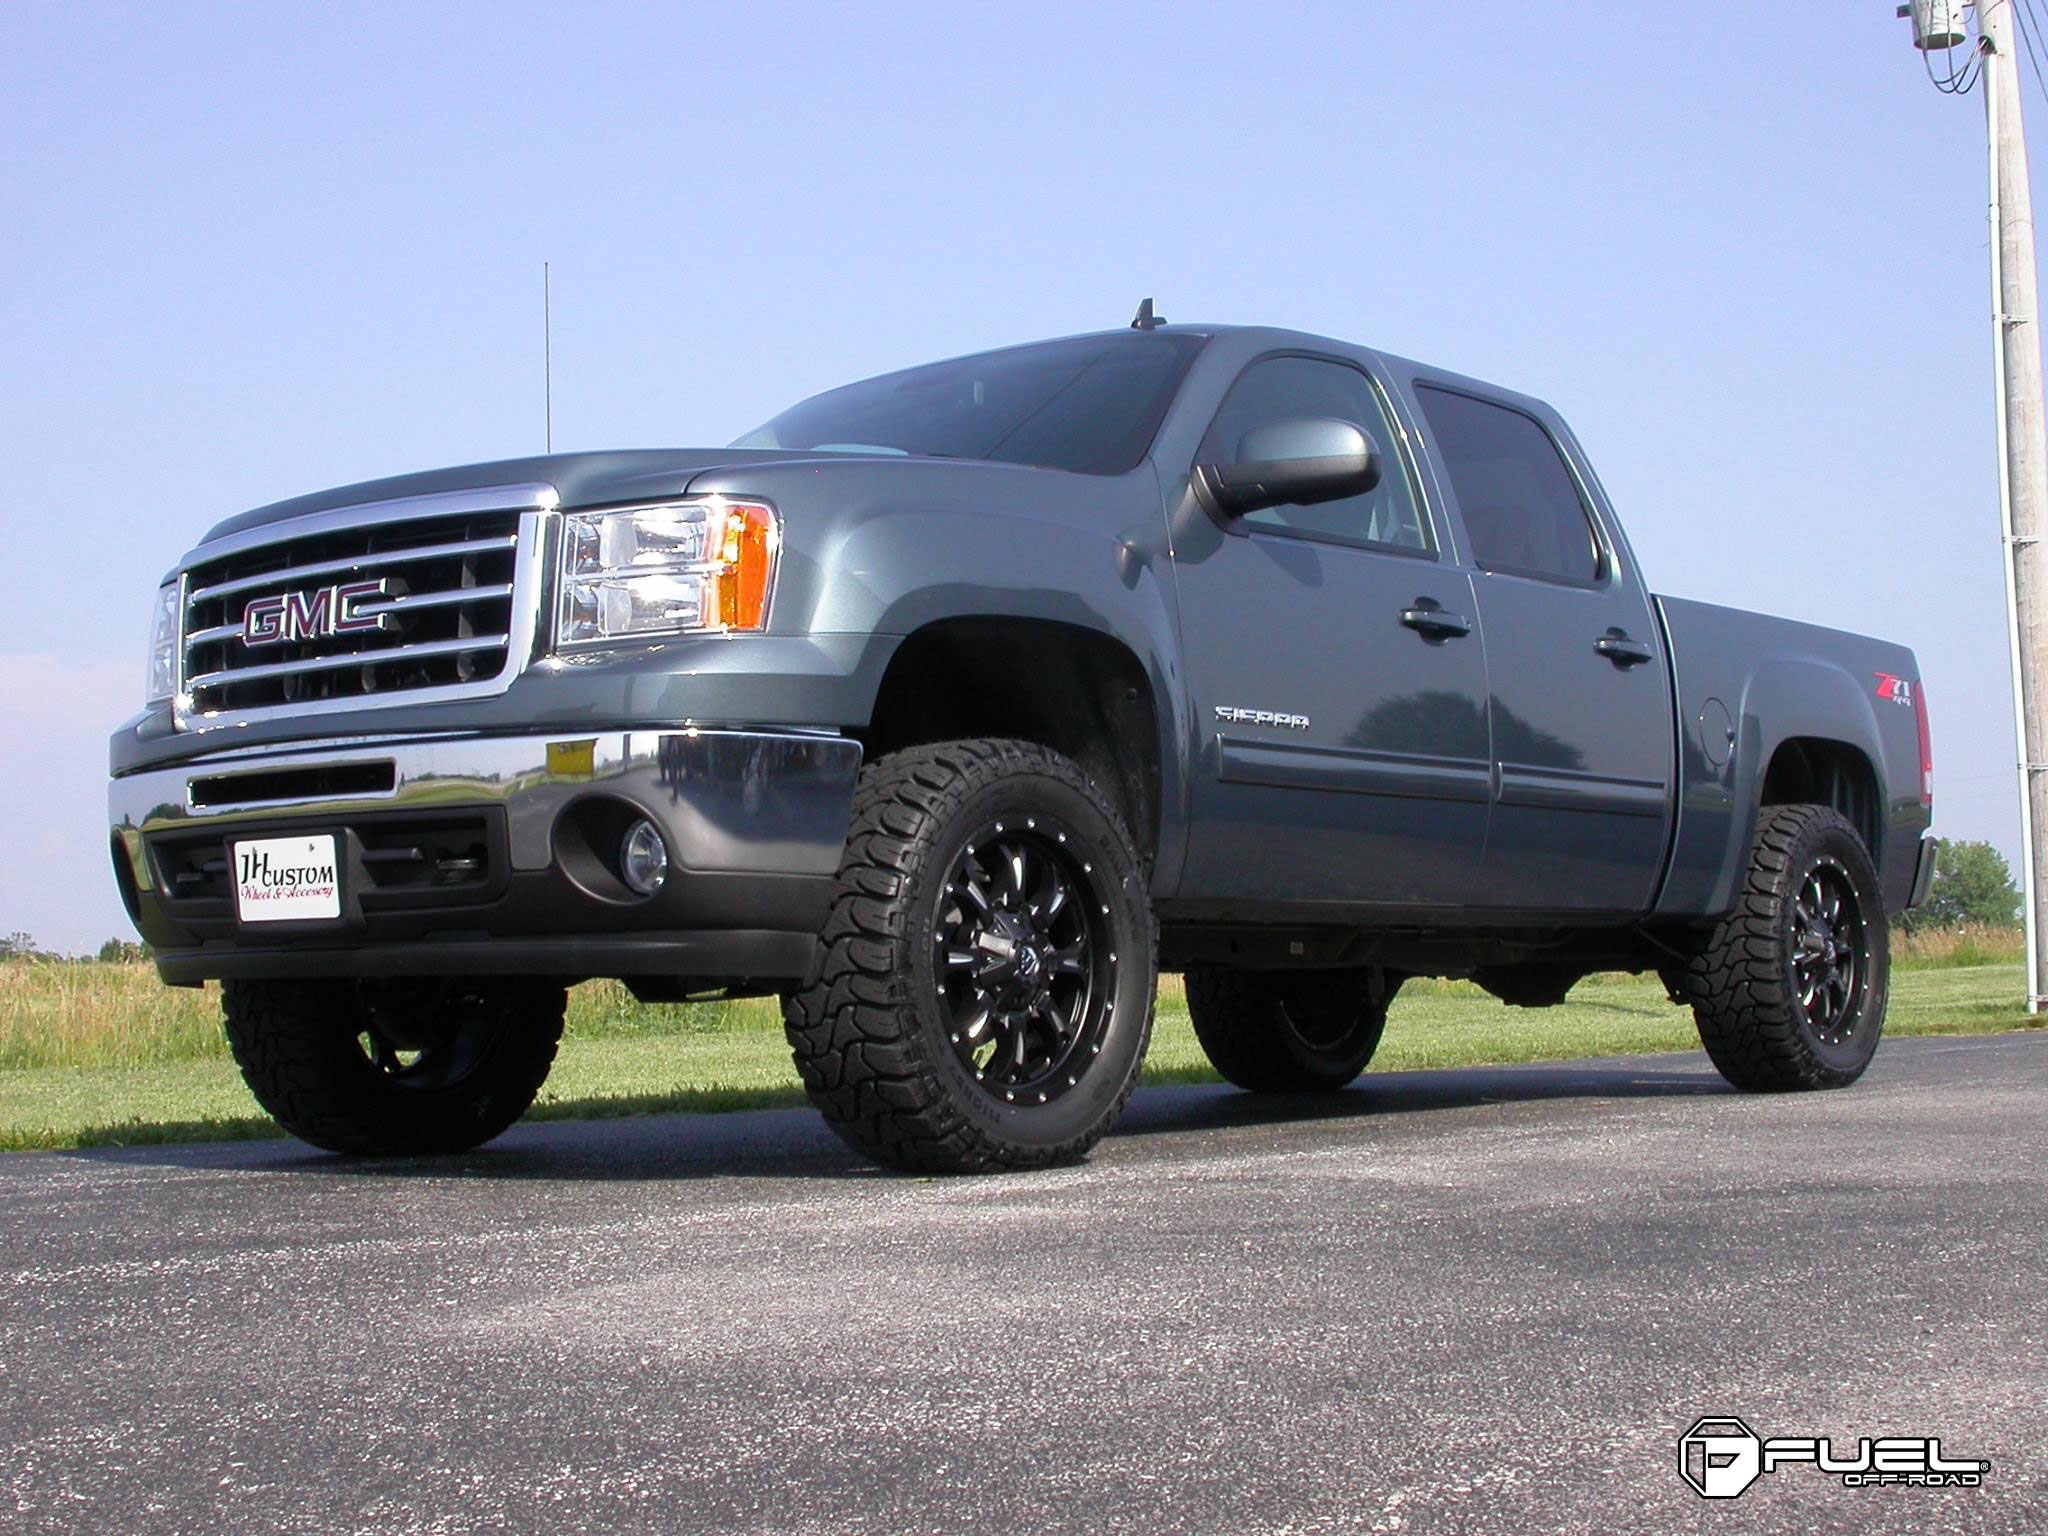 Gmc Sierra 1500 Krank D517 Gallery Fuel Off Road Wheels